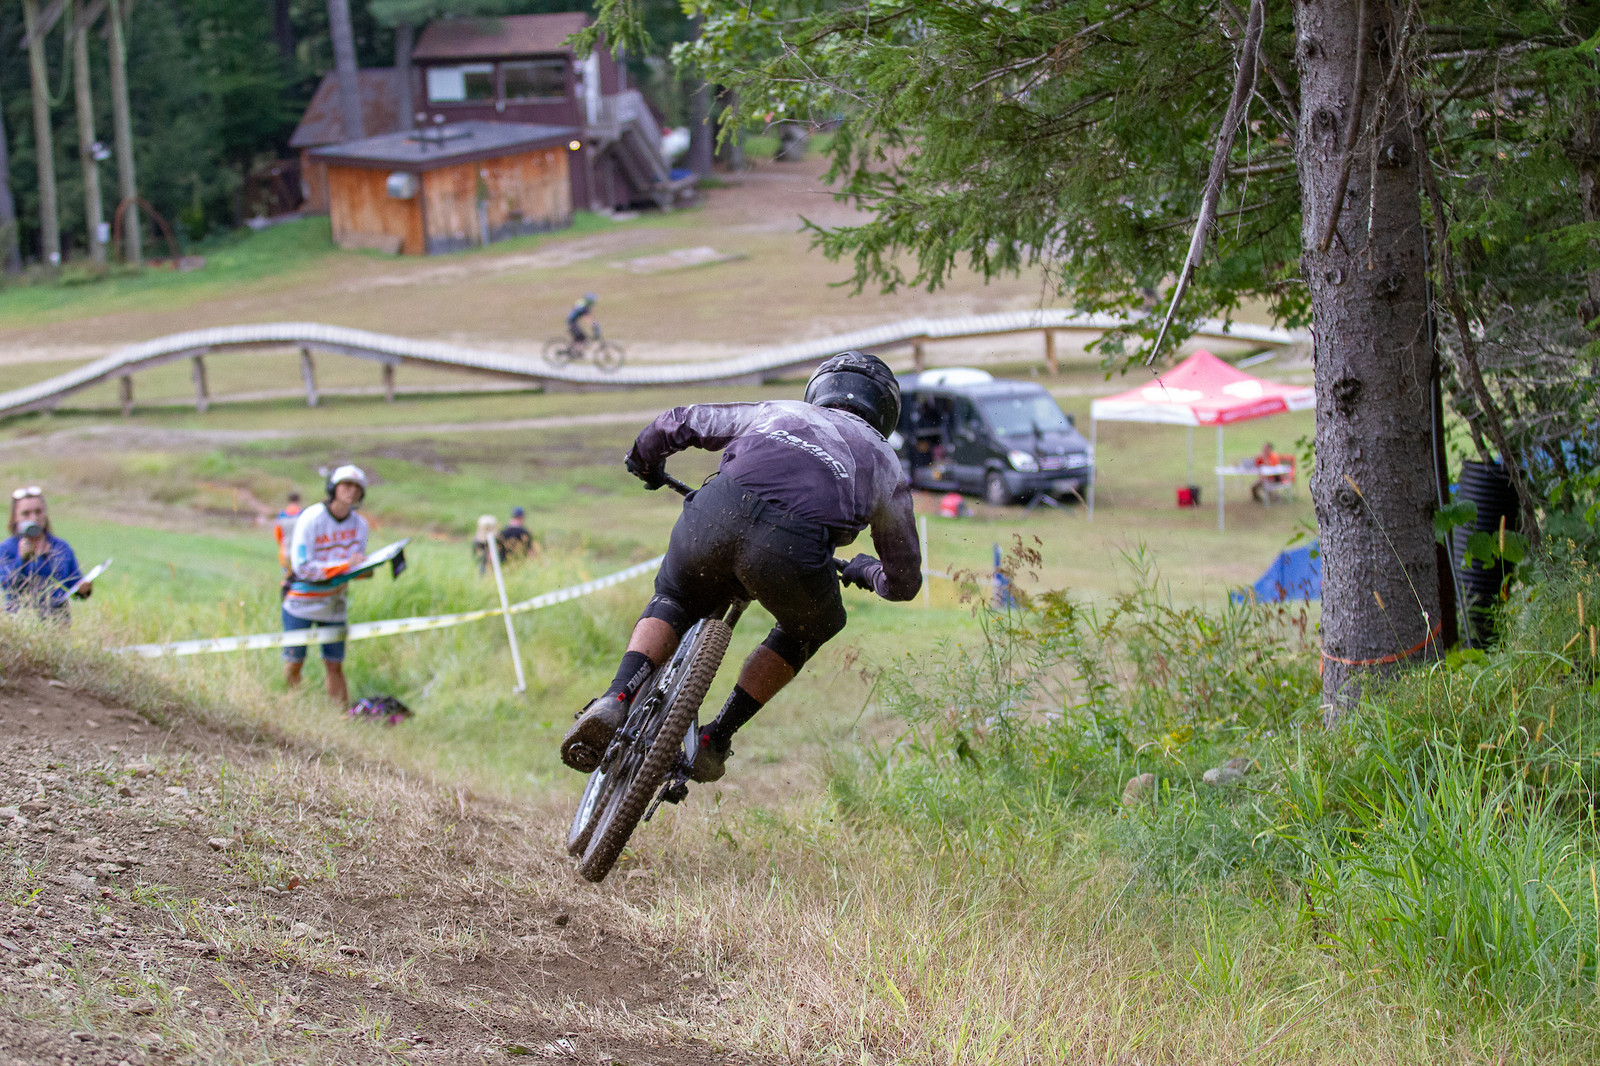 Hugo Langevin - JackRice - Mountain Biking Pictures - Vital MTB